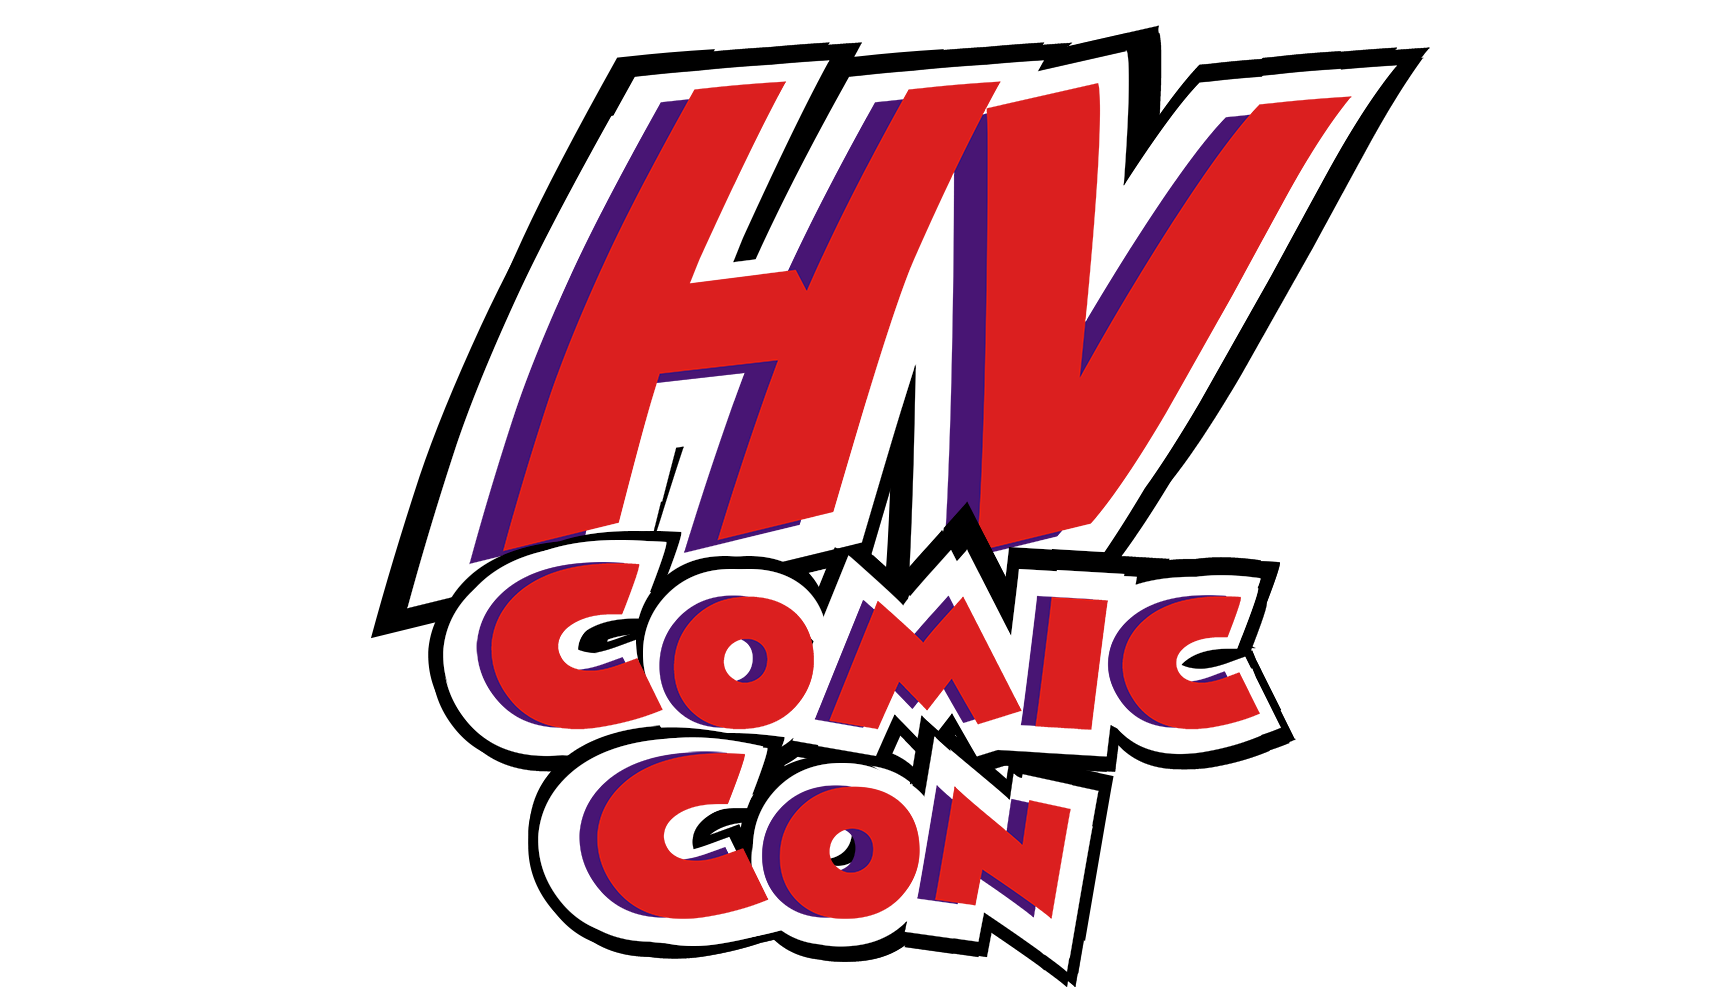 Hudson Valley Comic Con.